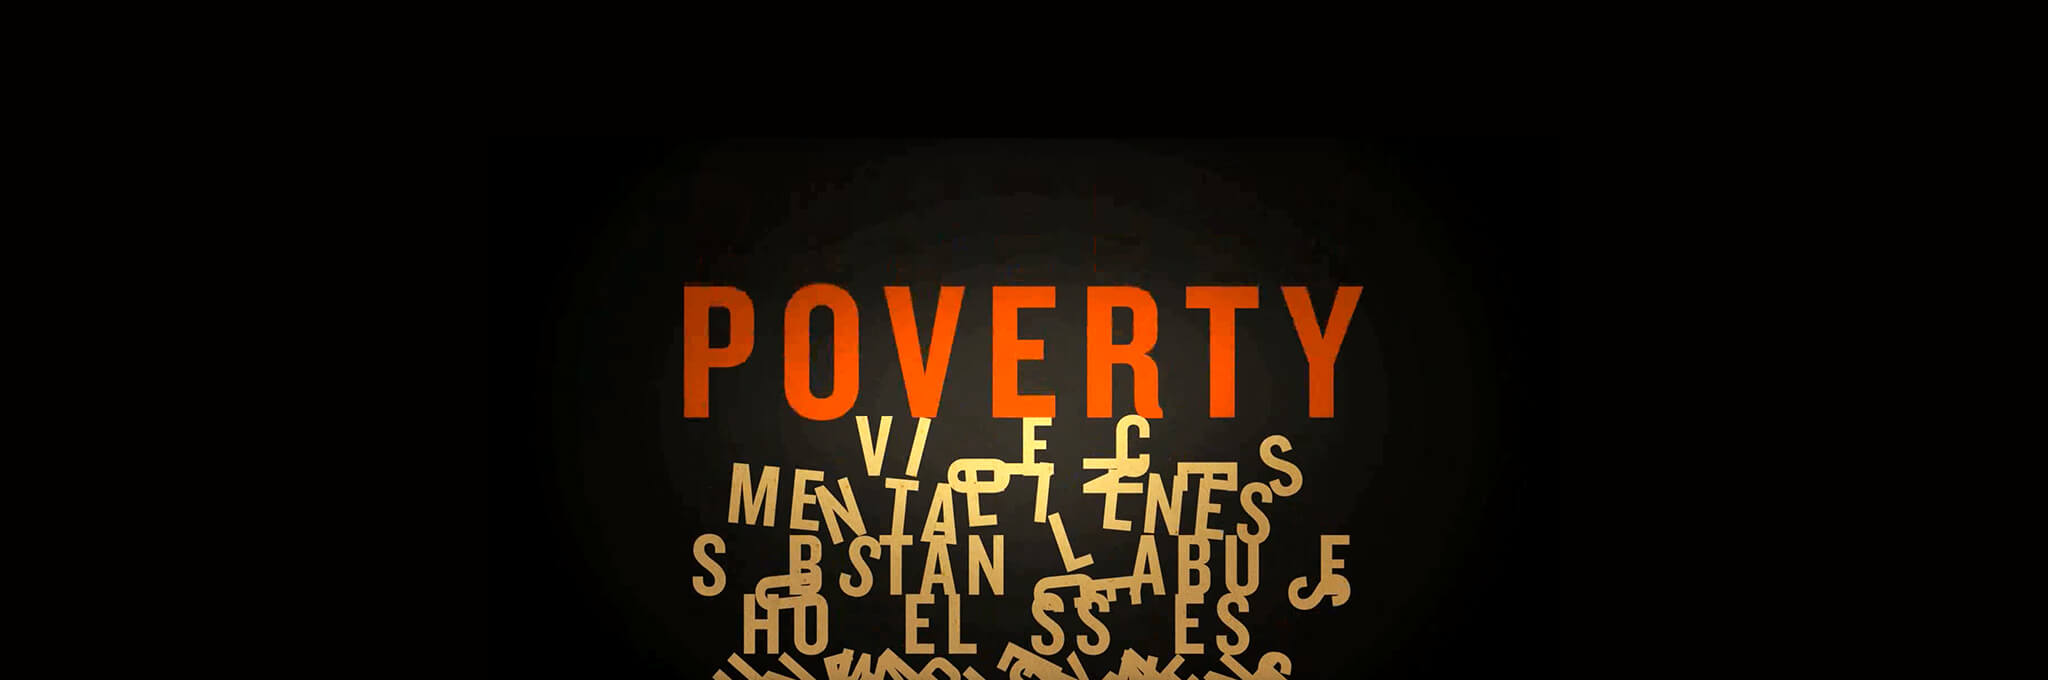 "Orange word ""Poverty"" above scrambled yellow letters on black background"